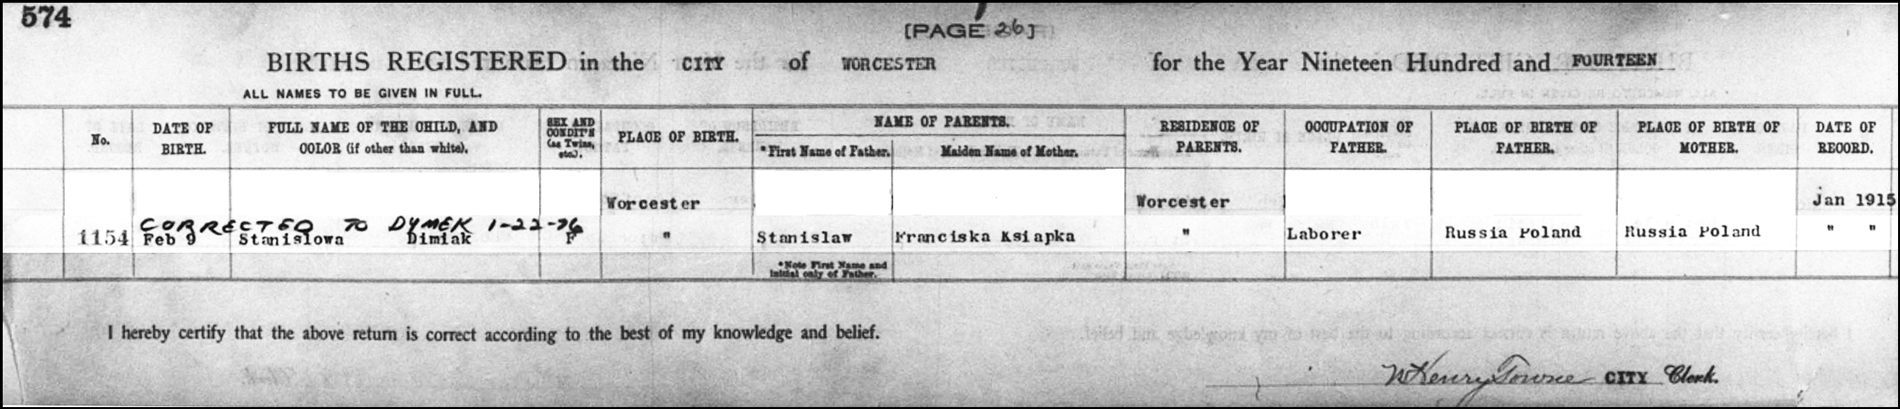 The Birth Record of Shirley Dymek – 1914